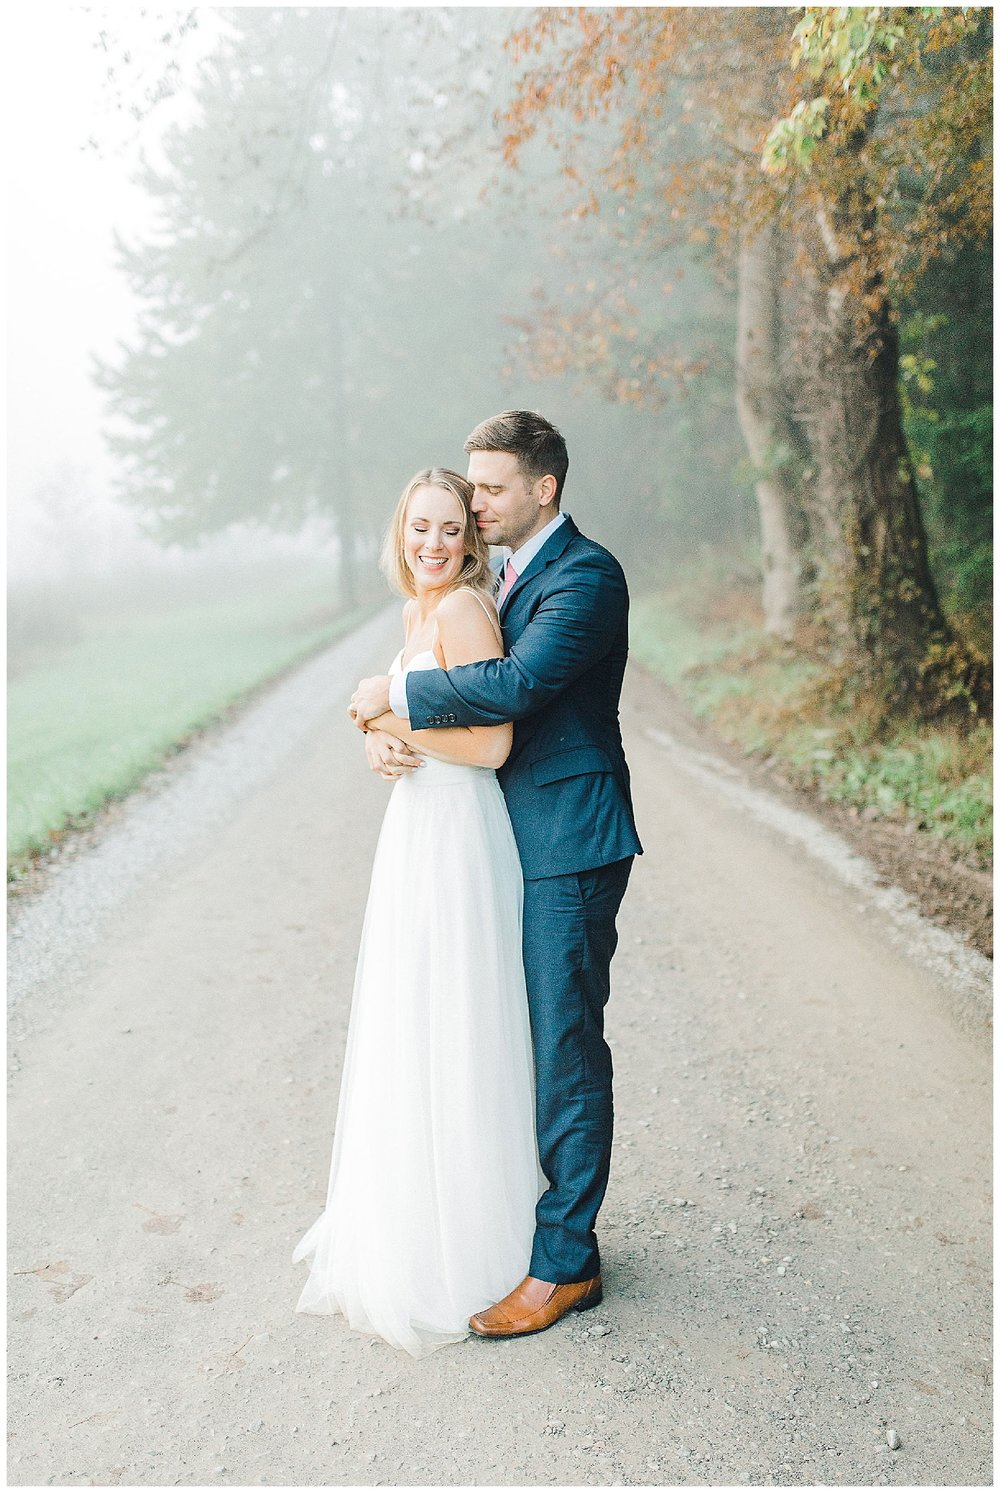 Emma Rose Company recently got to travel all the way to Nashville to photograph the most beautiful post-wedding bride and groom portraits in the Great Smoky Mountains with a gorgeous couple! Nashville wedding inspiration at it's finest._0020.jpg